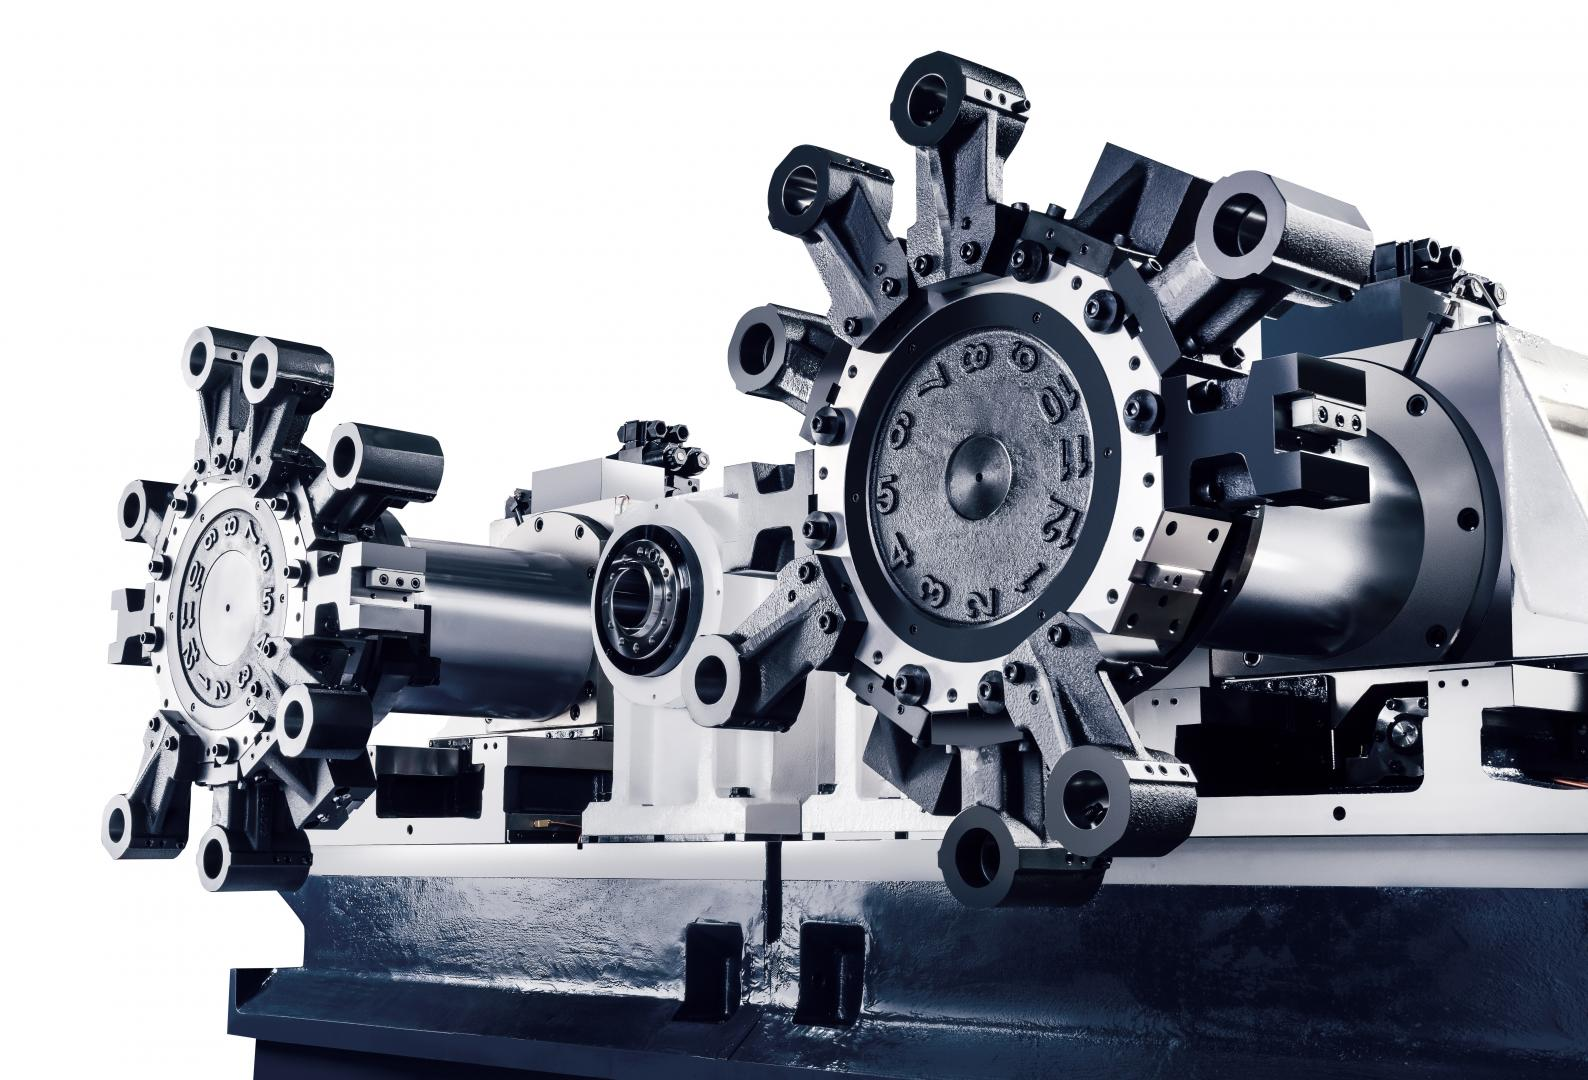 TTC-10 - Twin spindle lathe (front) with box guideways for